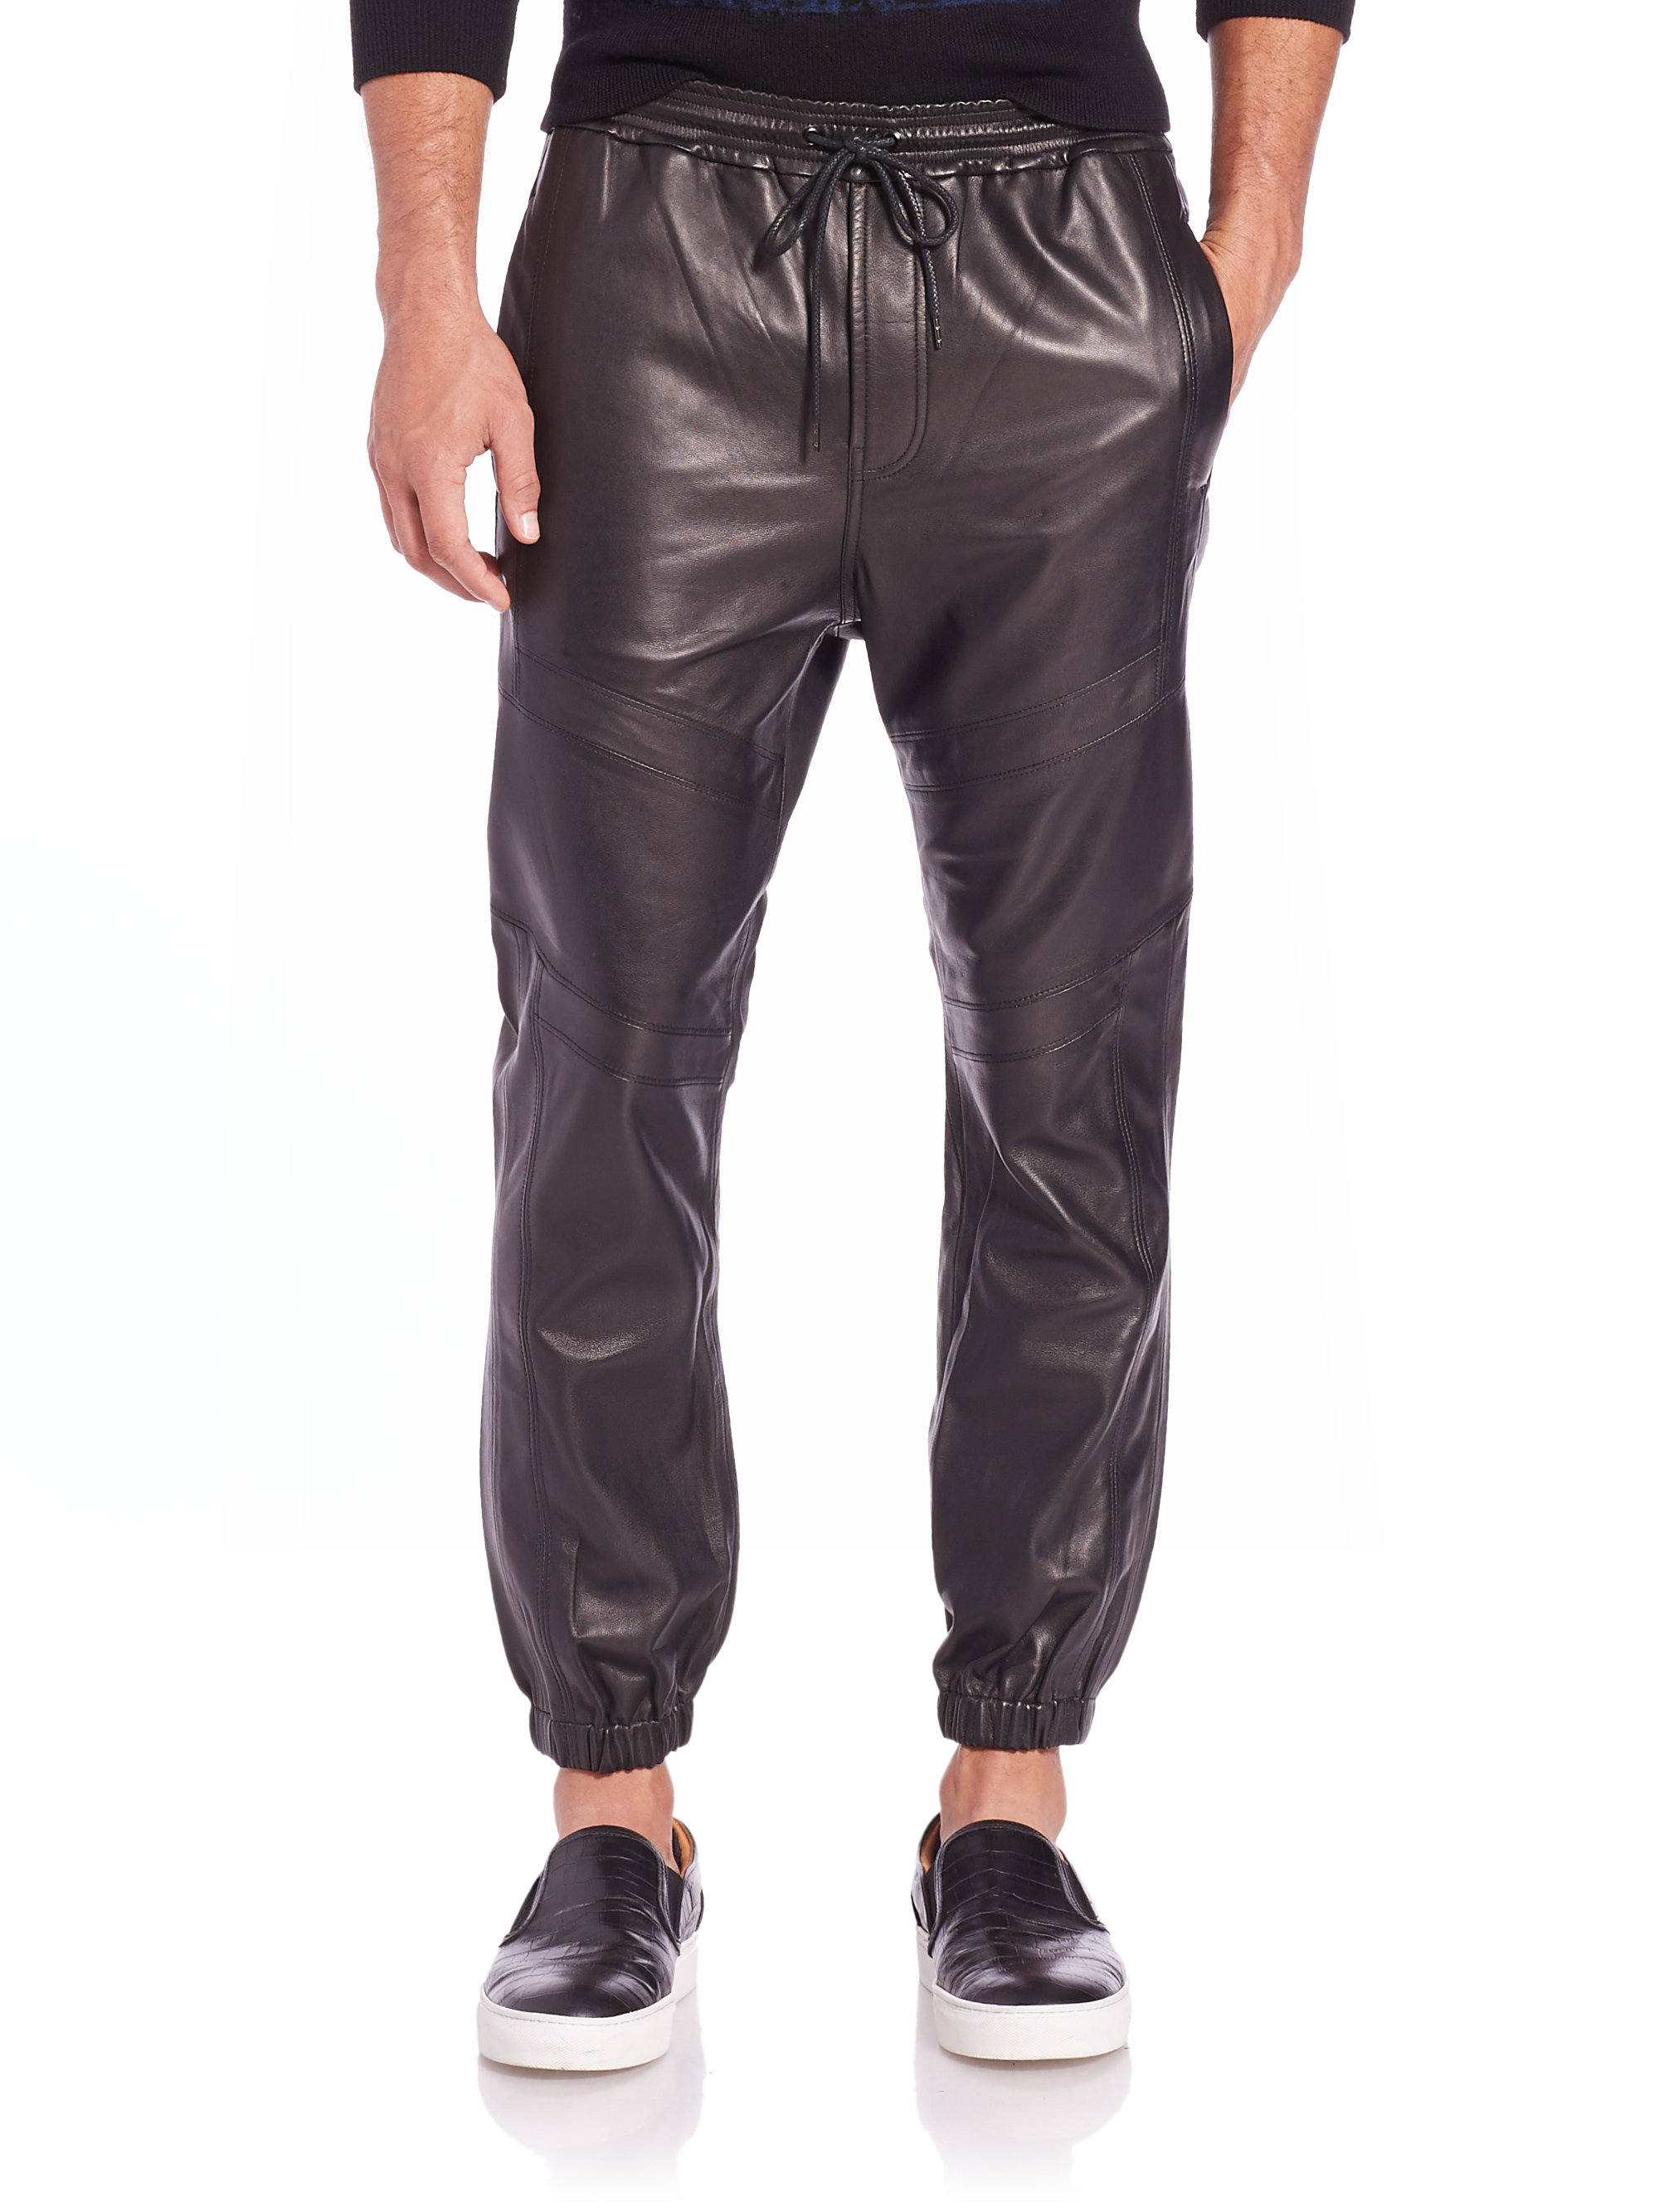 Genuine smooth Sheepskin leather sweat pants, celebrity style, similar to the design made popular by Kayne West. See our catalog under fashion leather all, for matching jackets, Tee's and baseball jersey's.